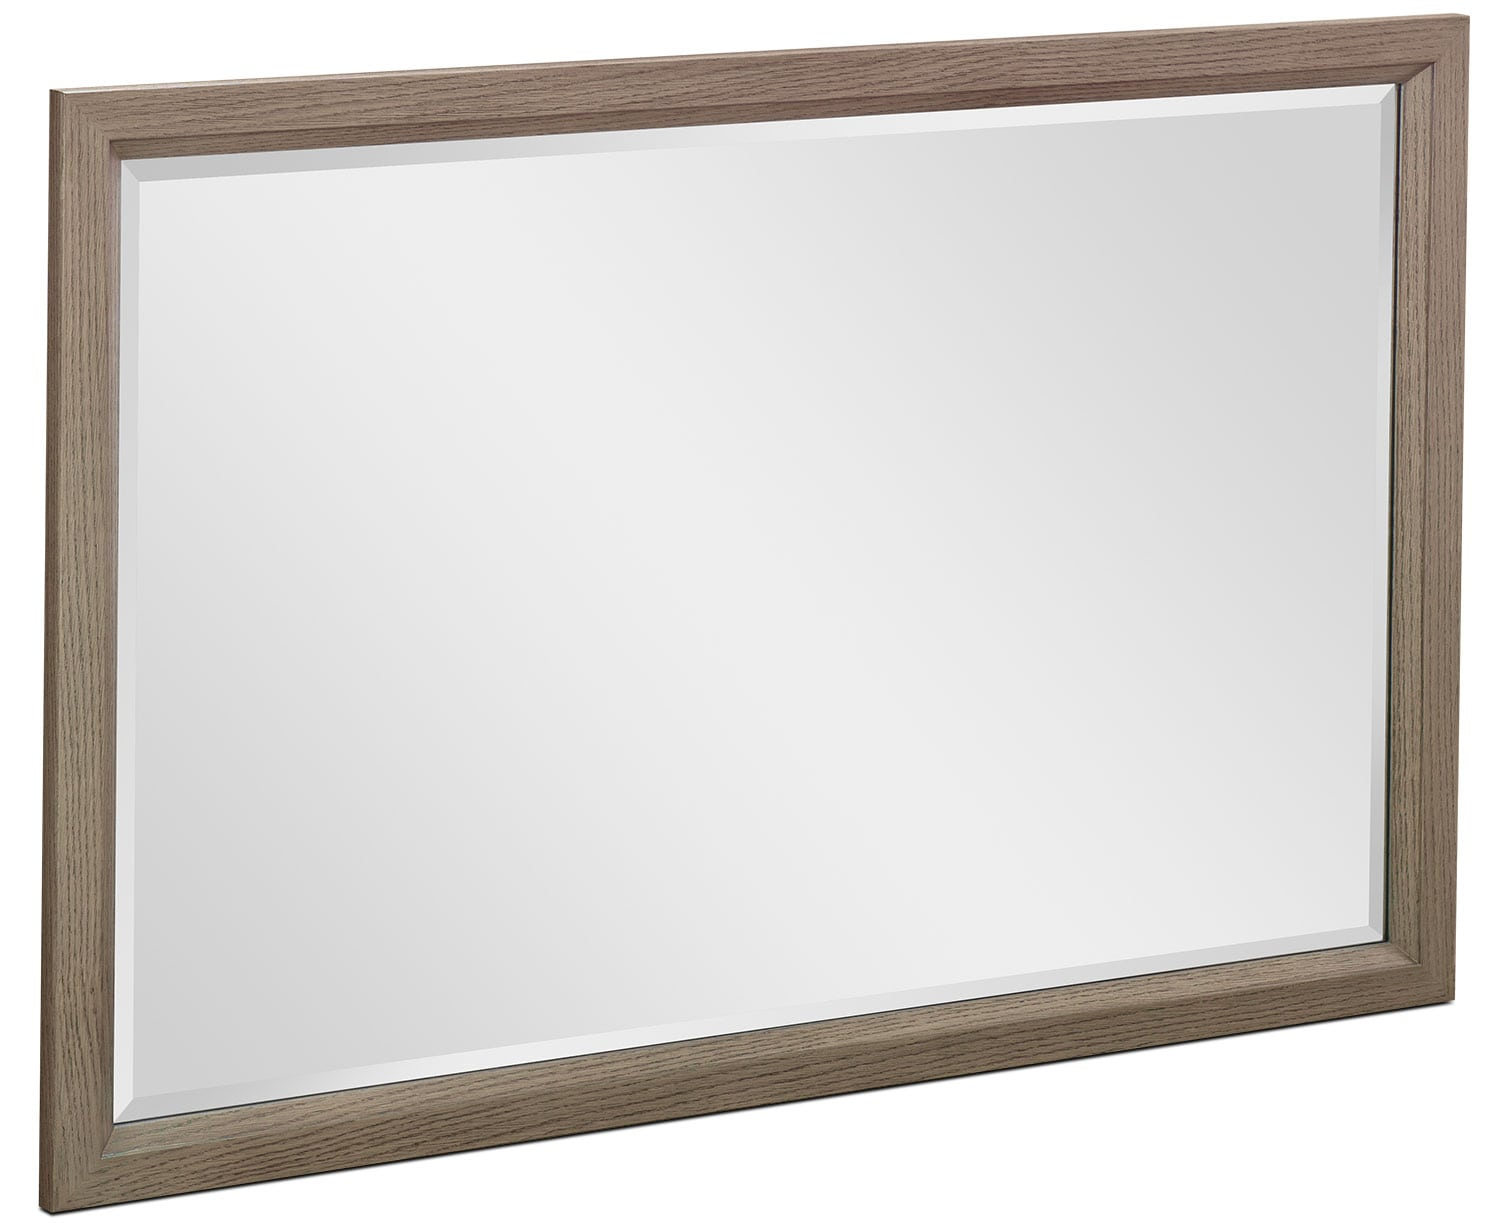 Rachael Ray Highline Mirror - Greige